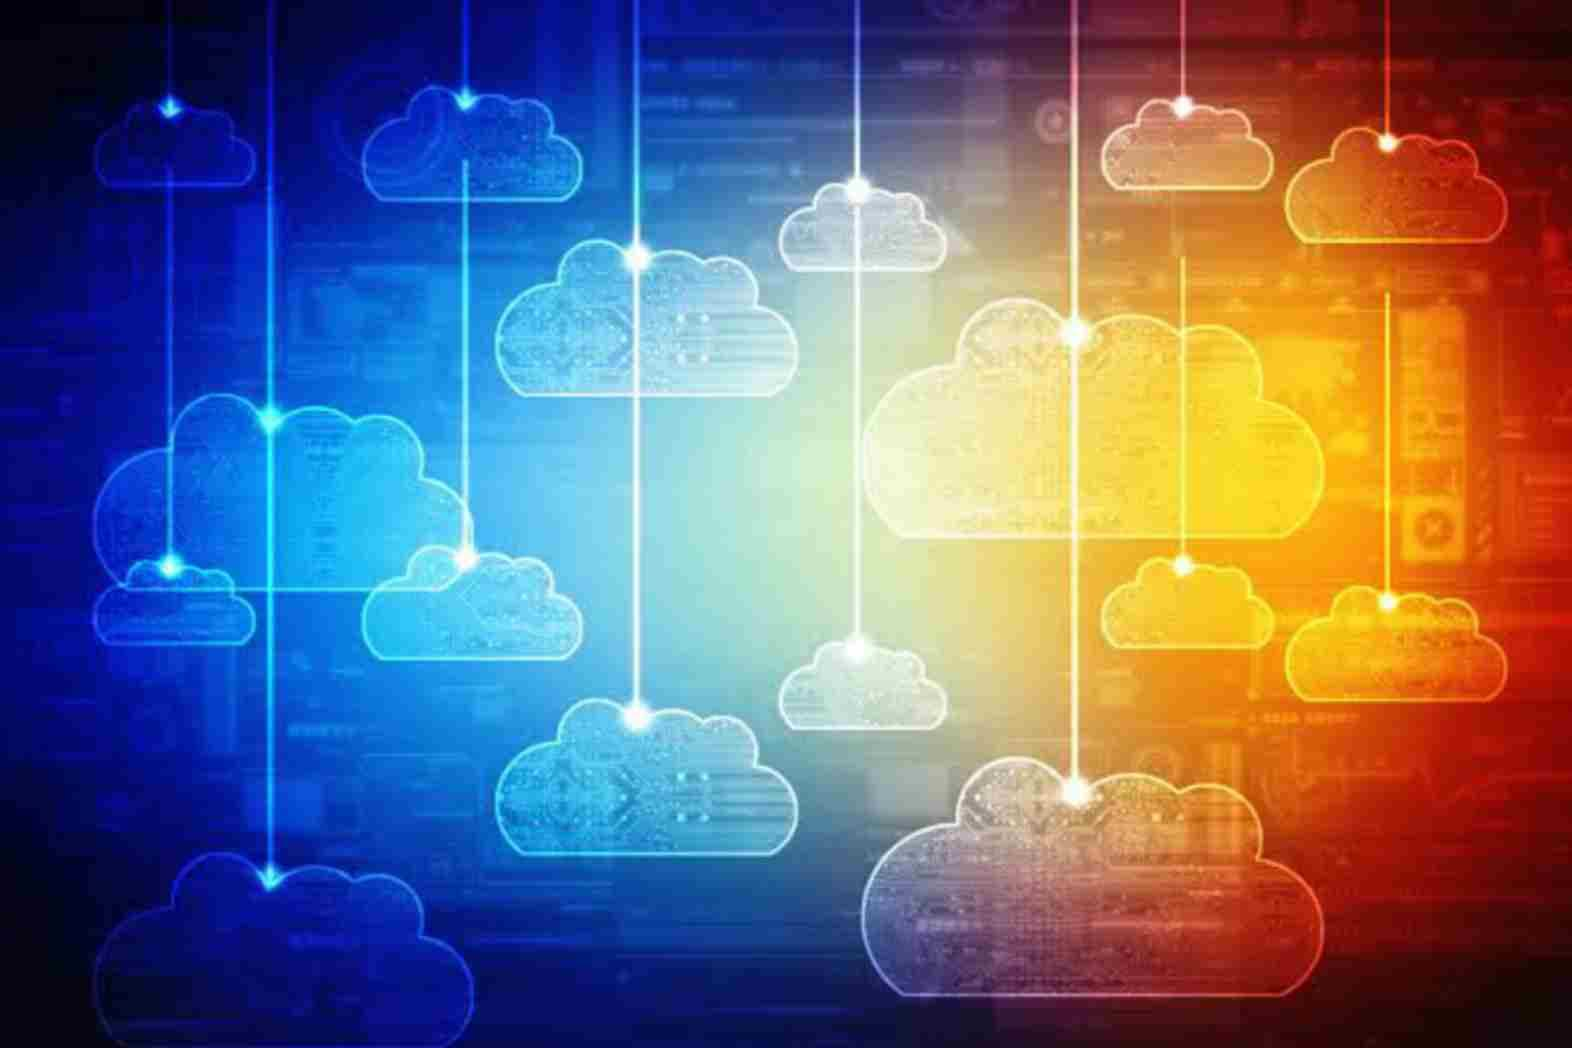 Cloud Hosting (Computing), new technology to store data on servers